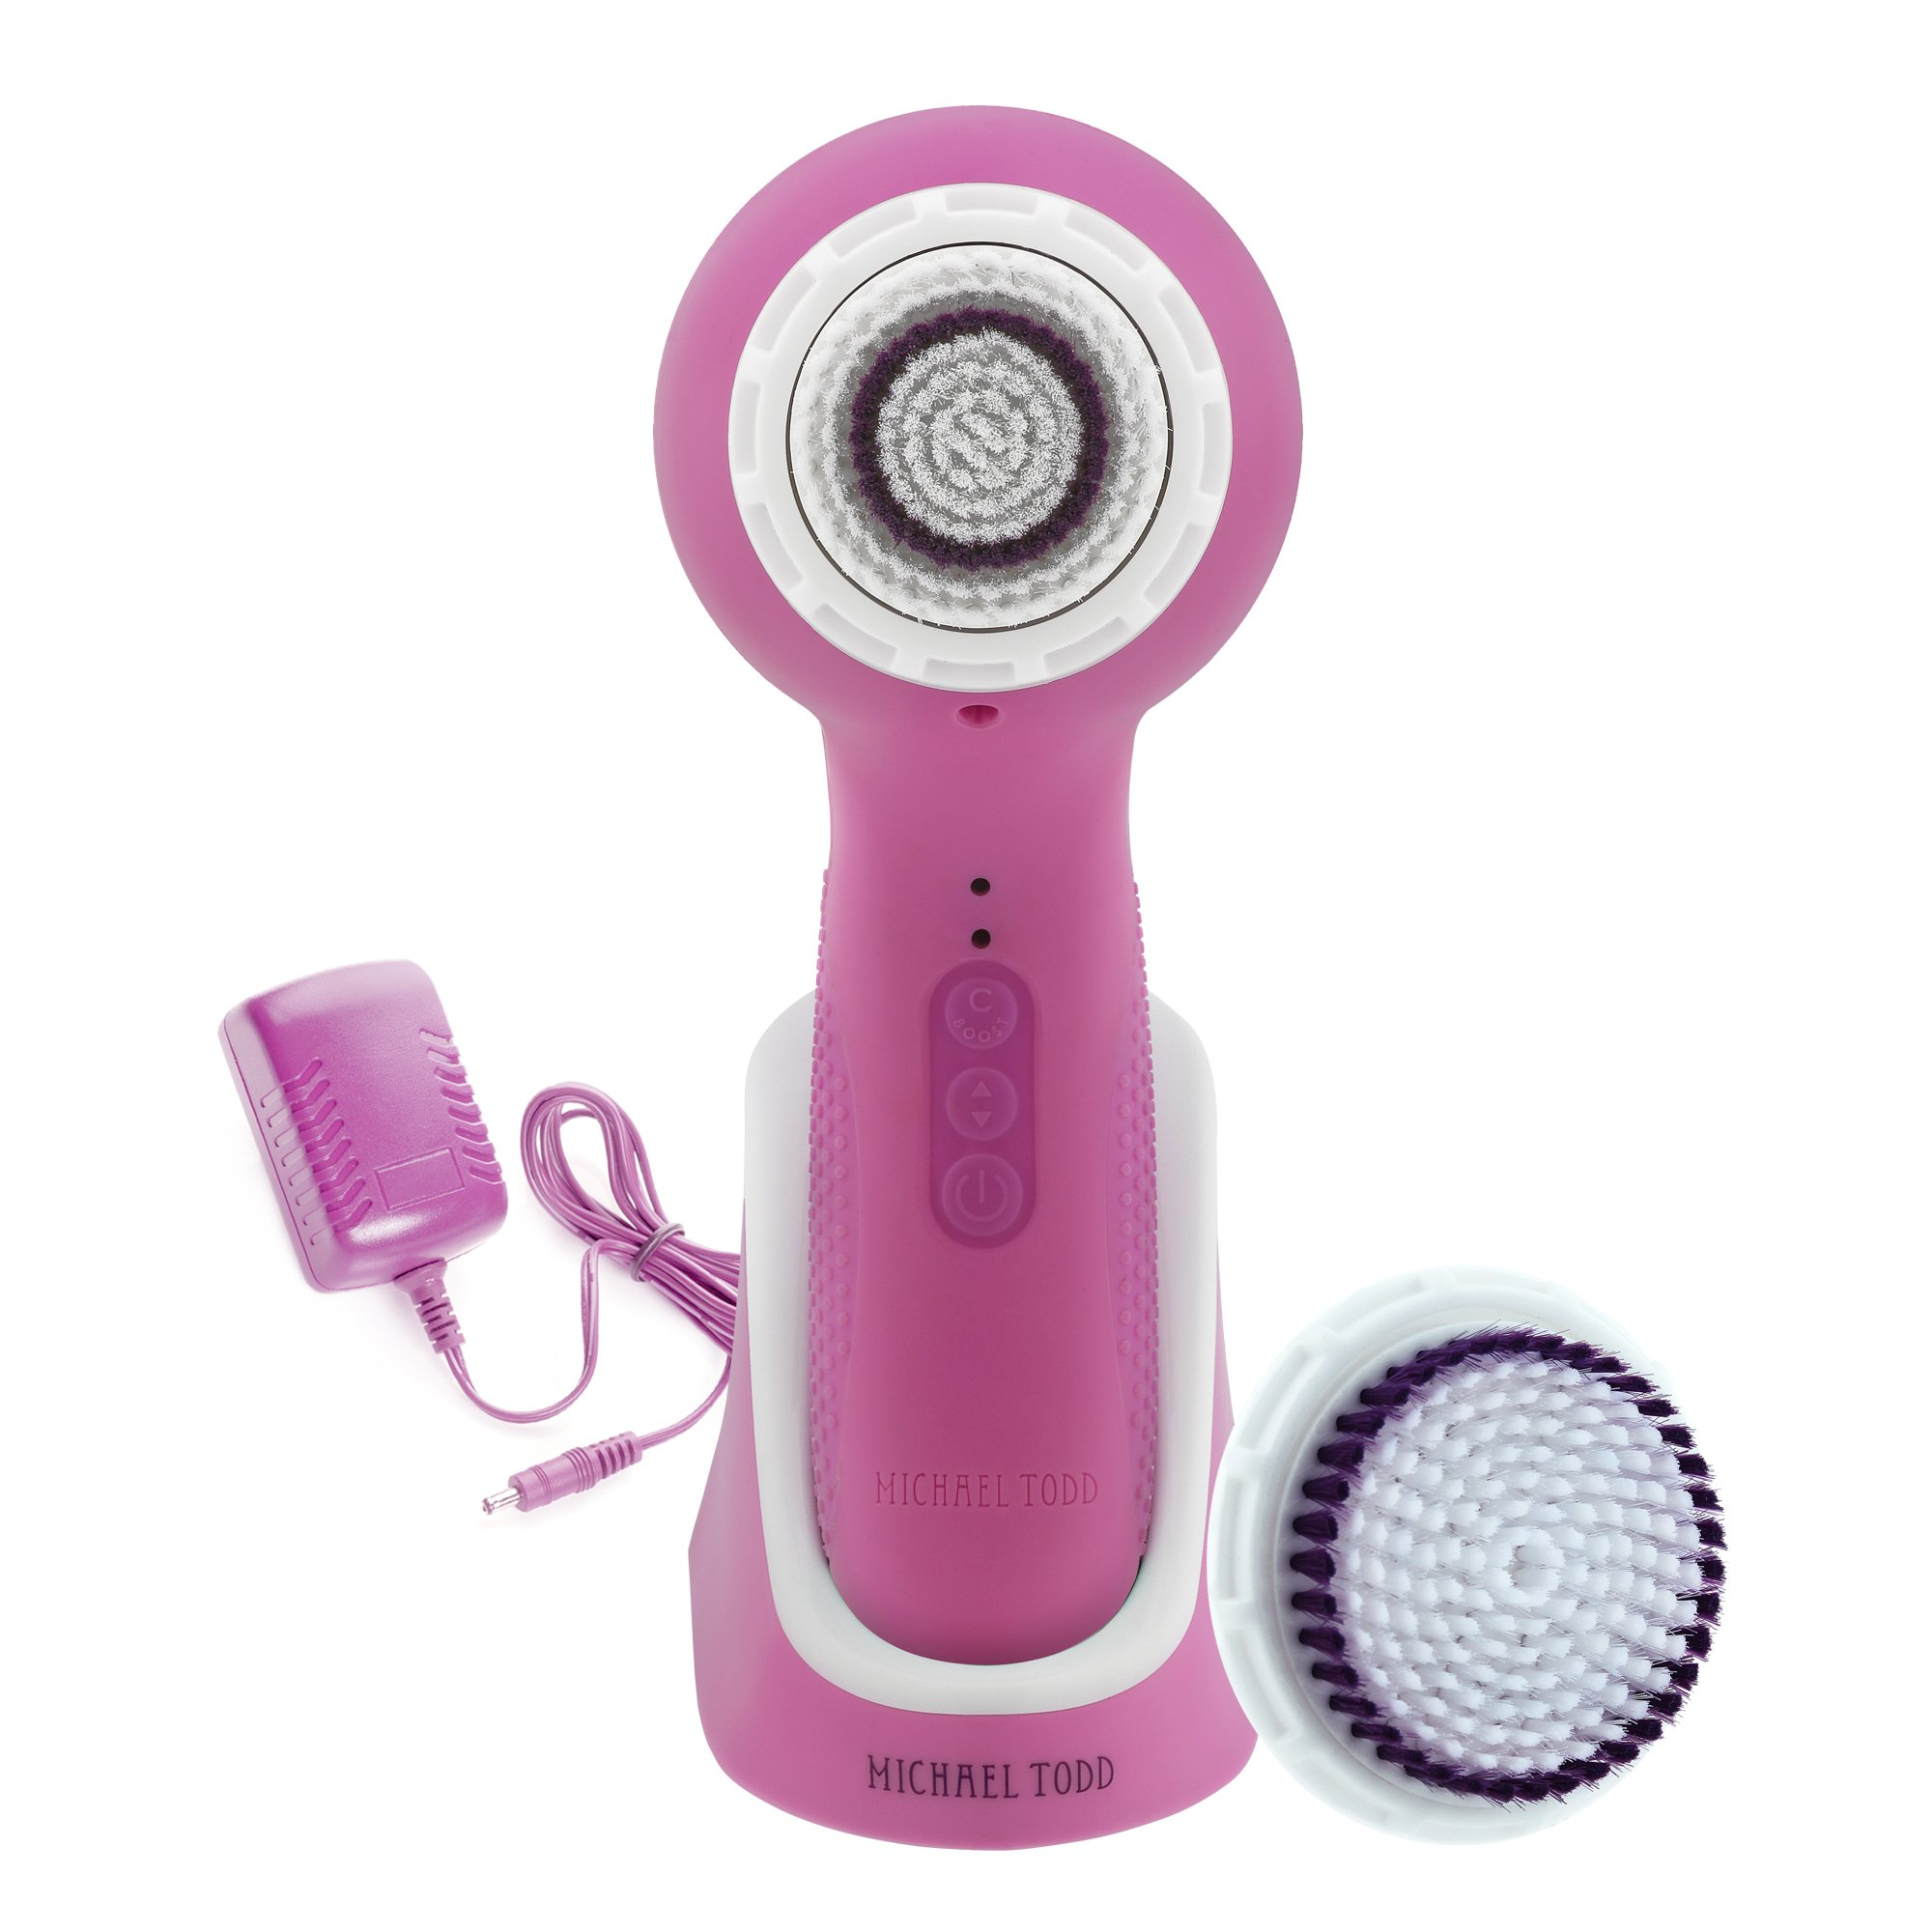 Michael Todd Soniclear Elite Skin Cleansing System, Cotton Candy